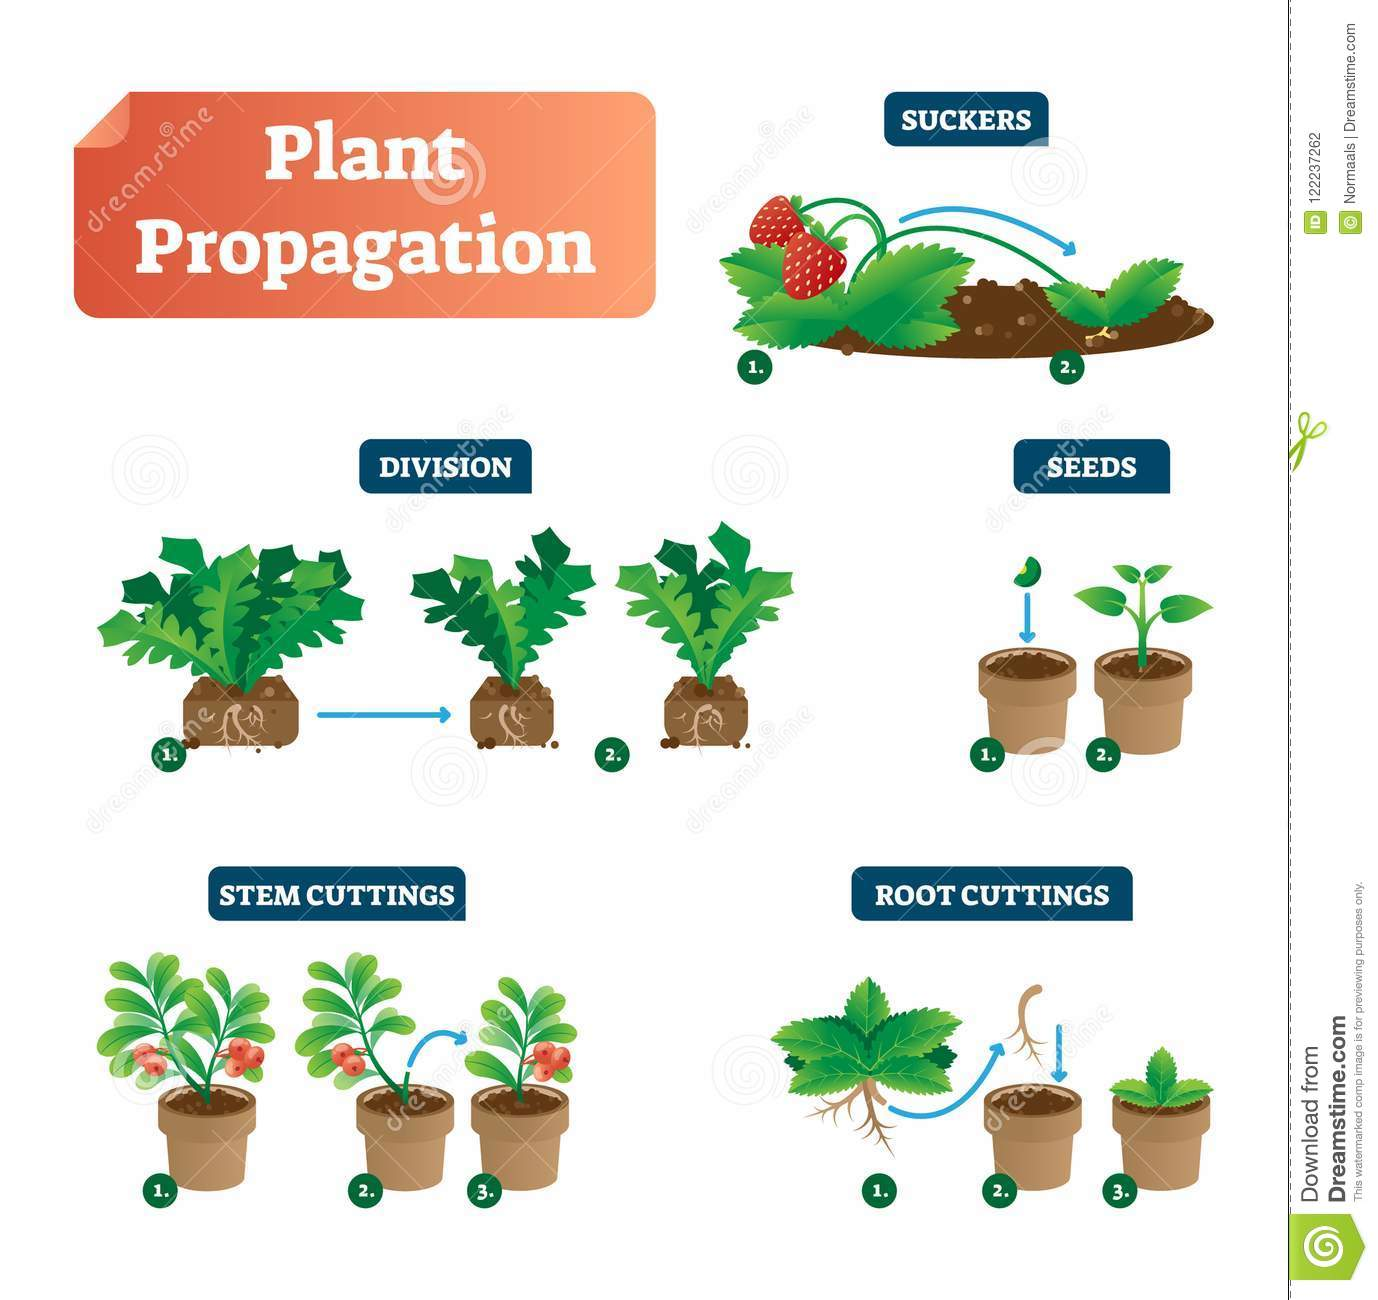 Plant Propagation Vector Illustration Diagram Scheme With